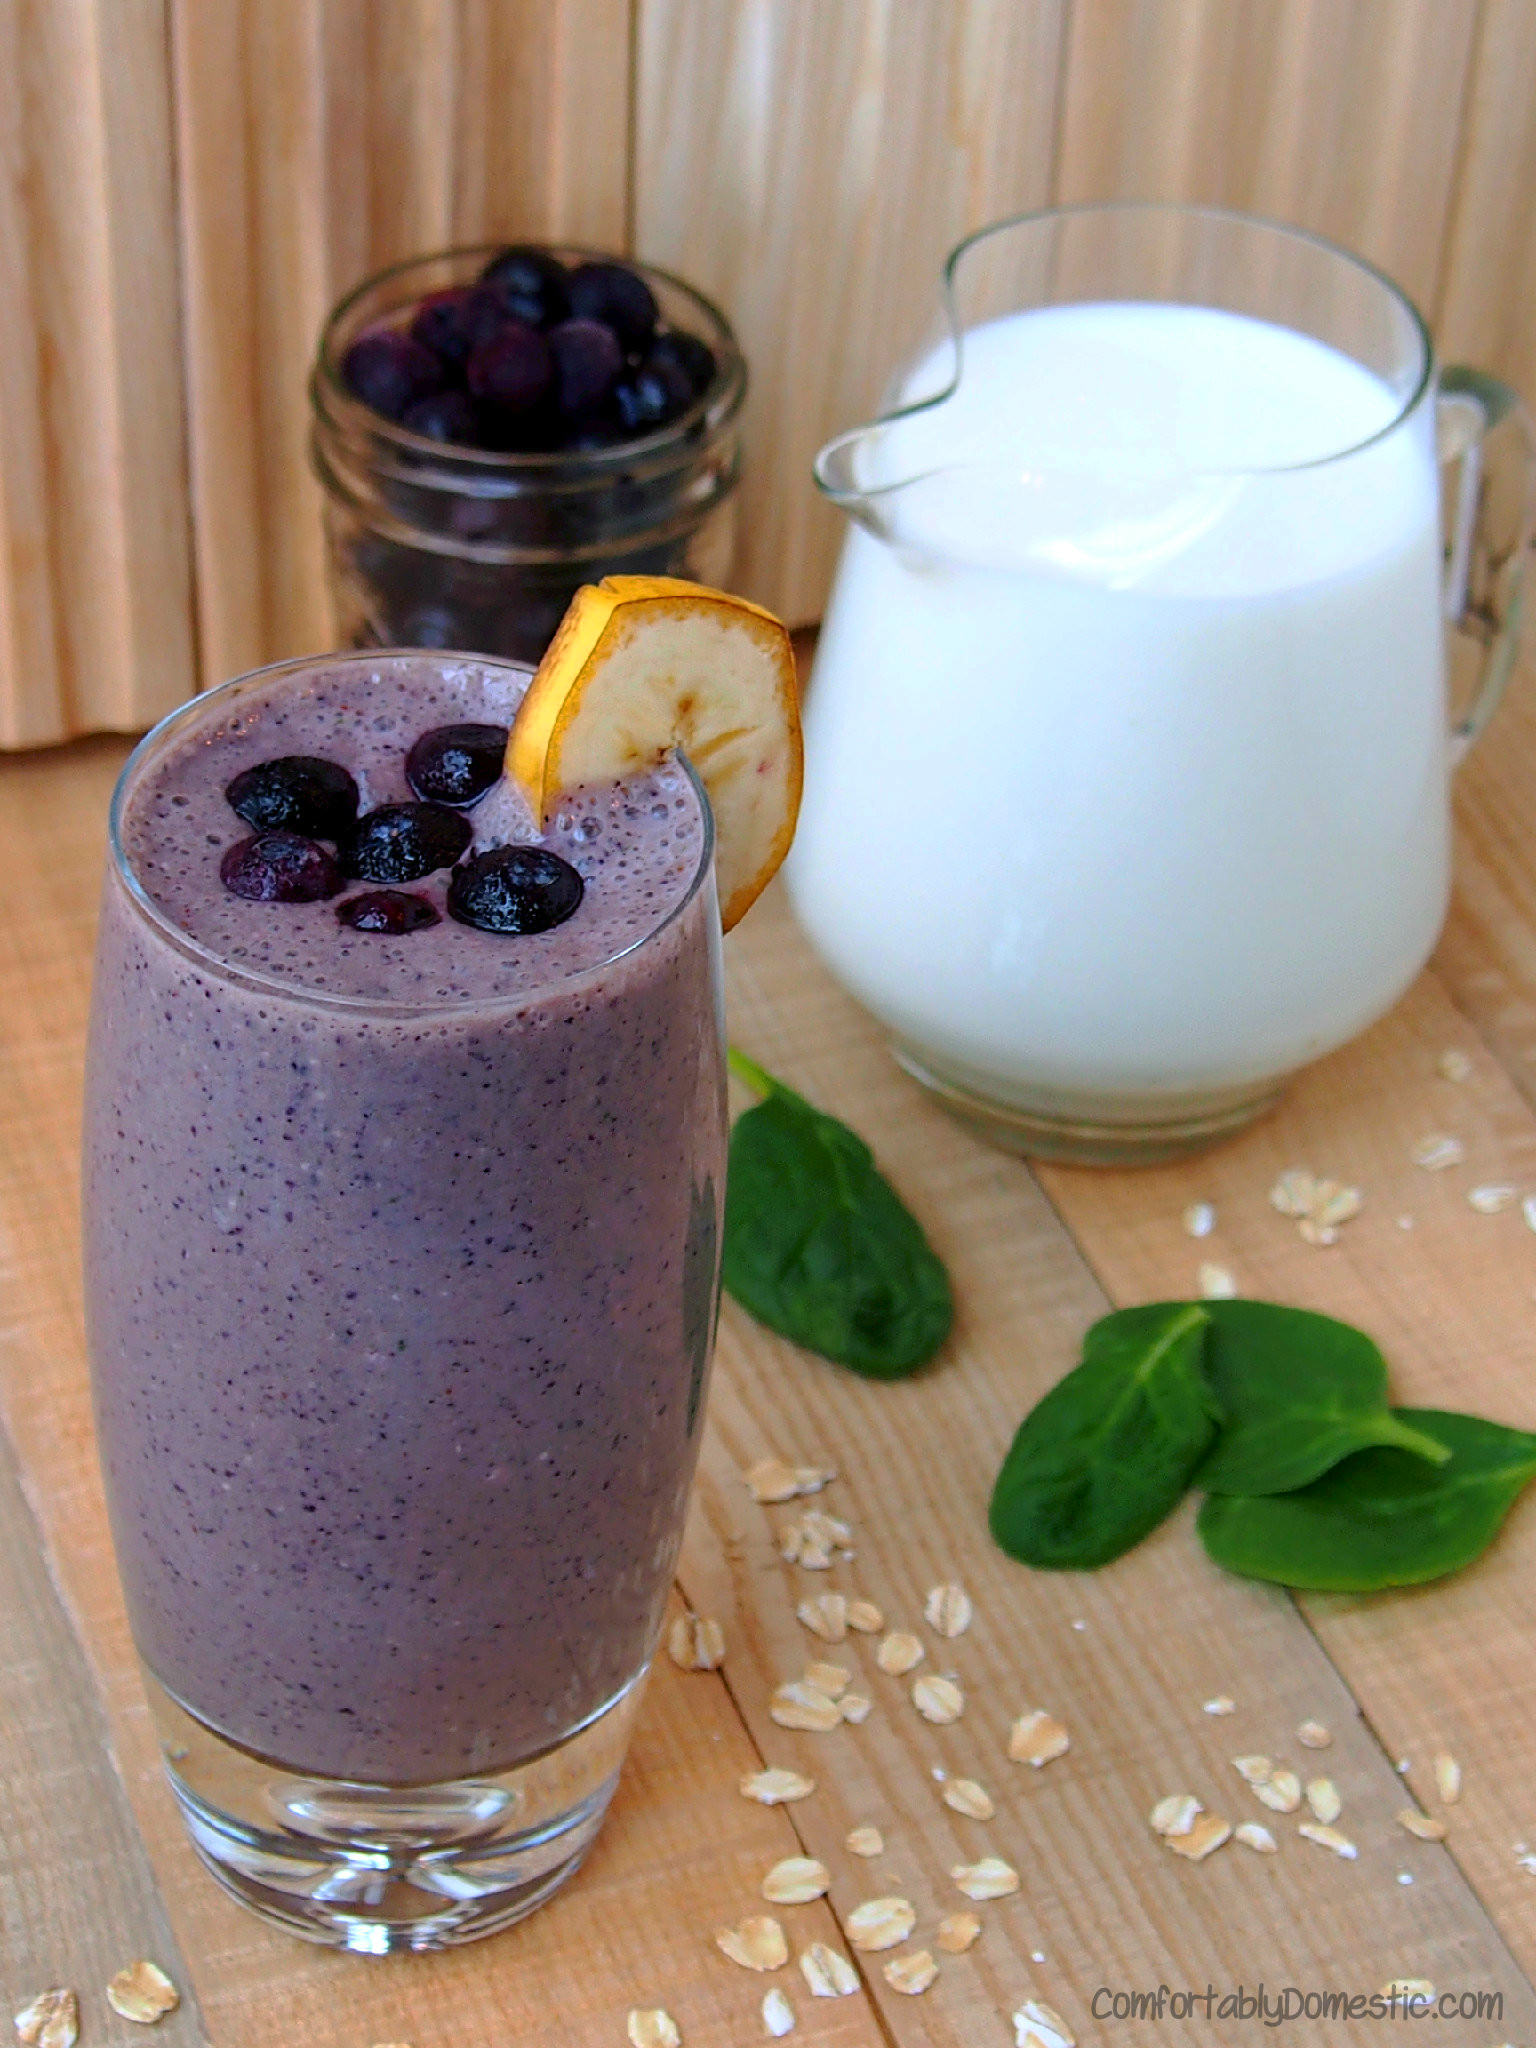 Healthy and delicious, Blueberry Banana Smoothies (with Secret Spinach) | ComfortablyDomestic.com